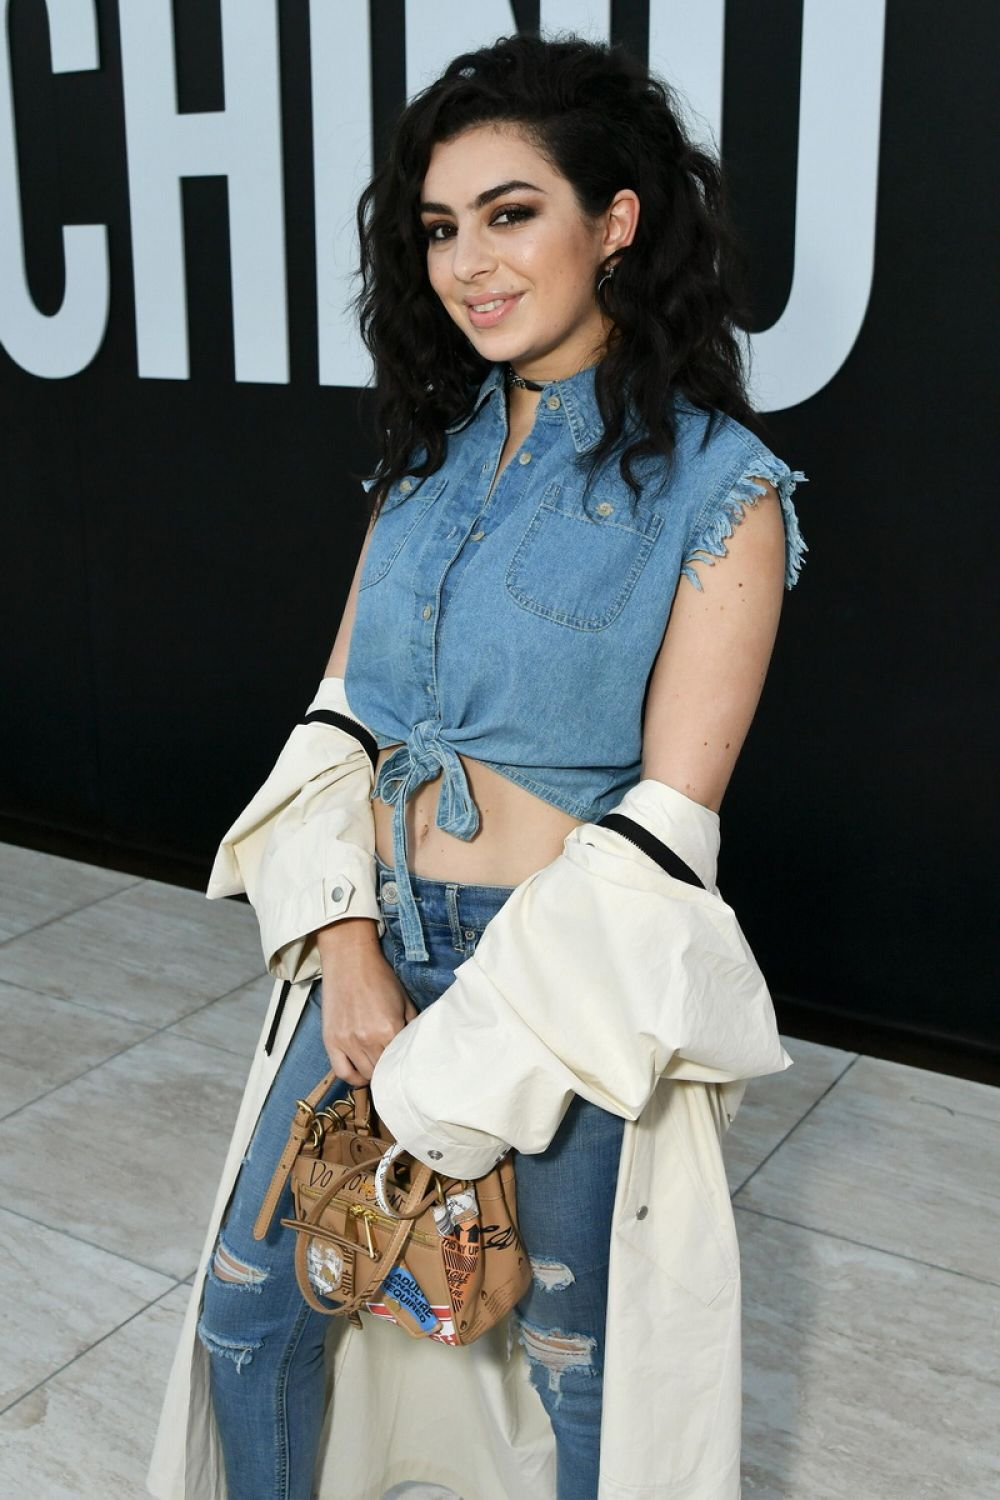 CHARLI XCX at Moschino Spring Summer 2018 Resort Collection 06/08/2017